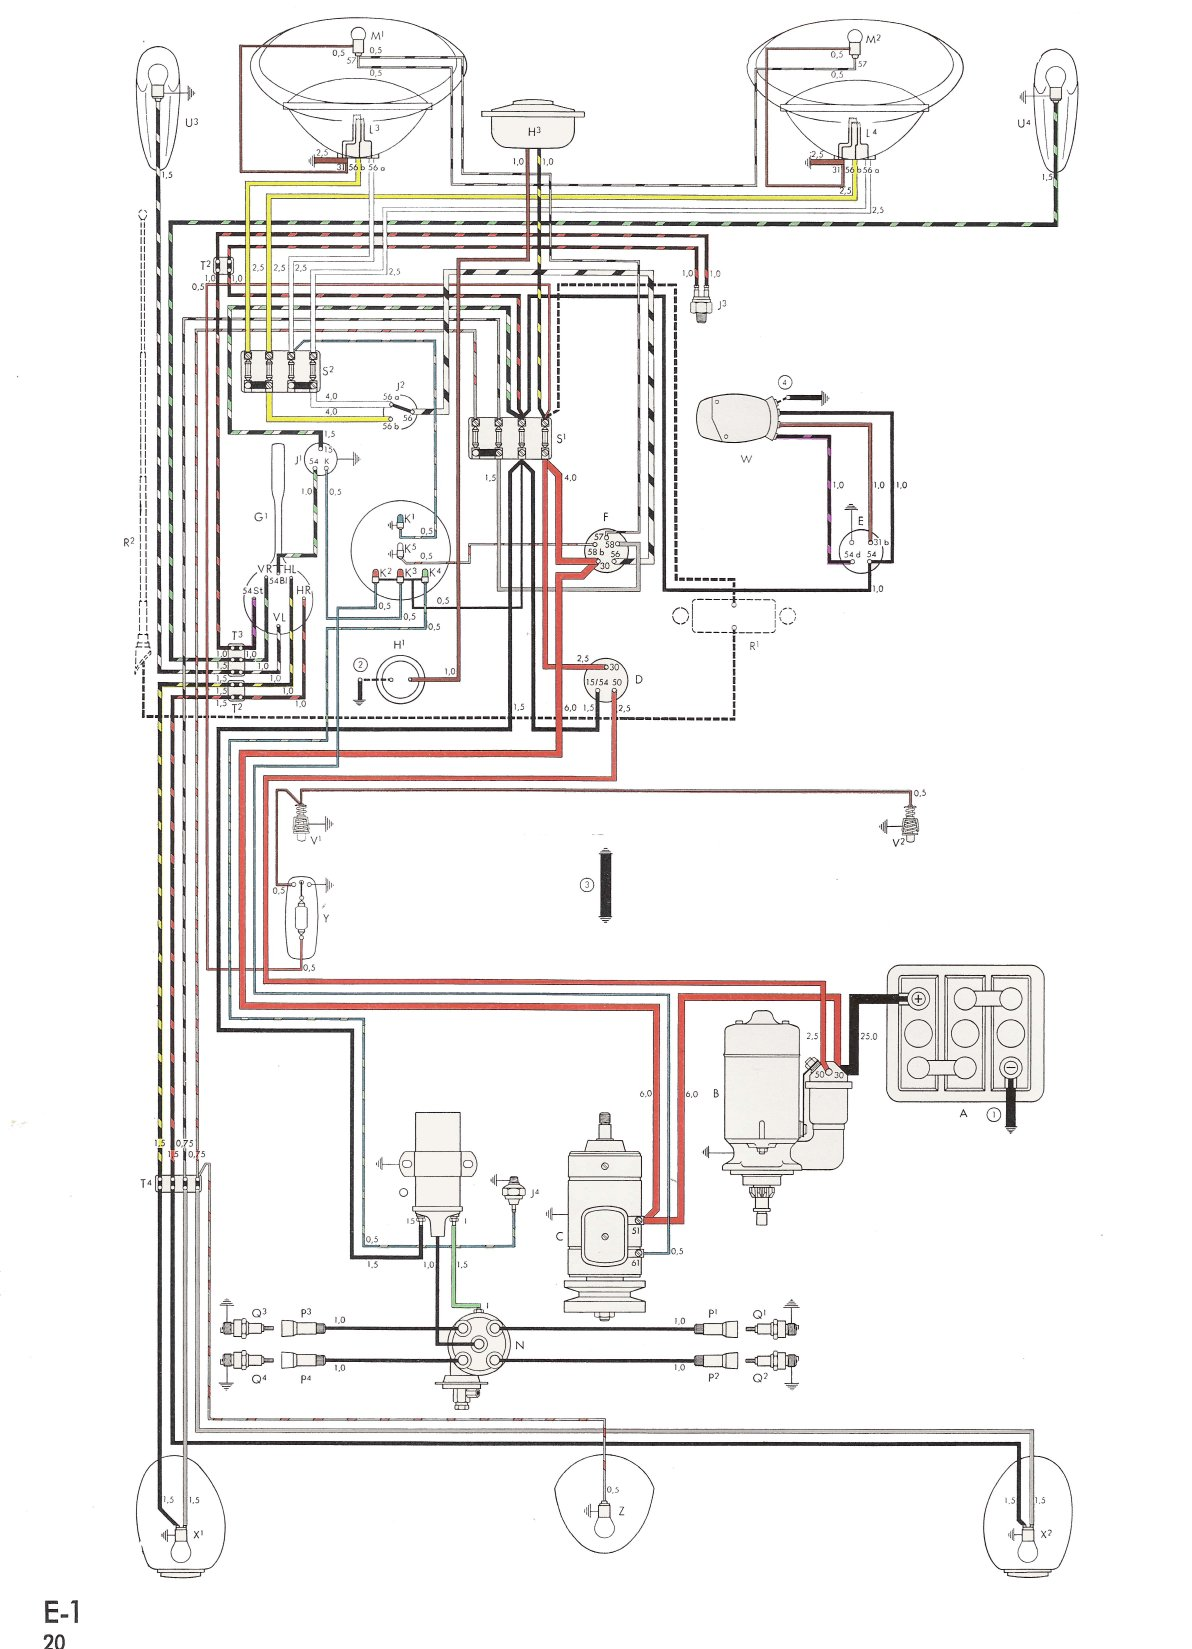 bug60 thesamba com type 1 wiring diagrams 1965 vw beetle wiring diagram at edmiracle.co